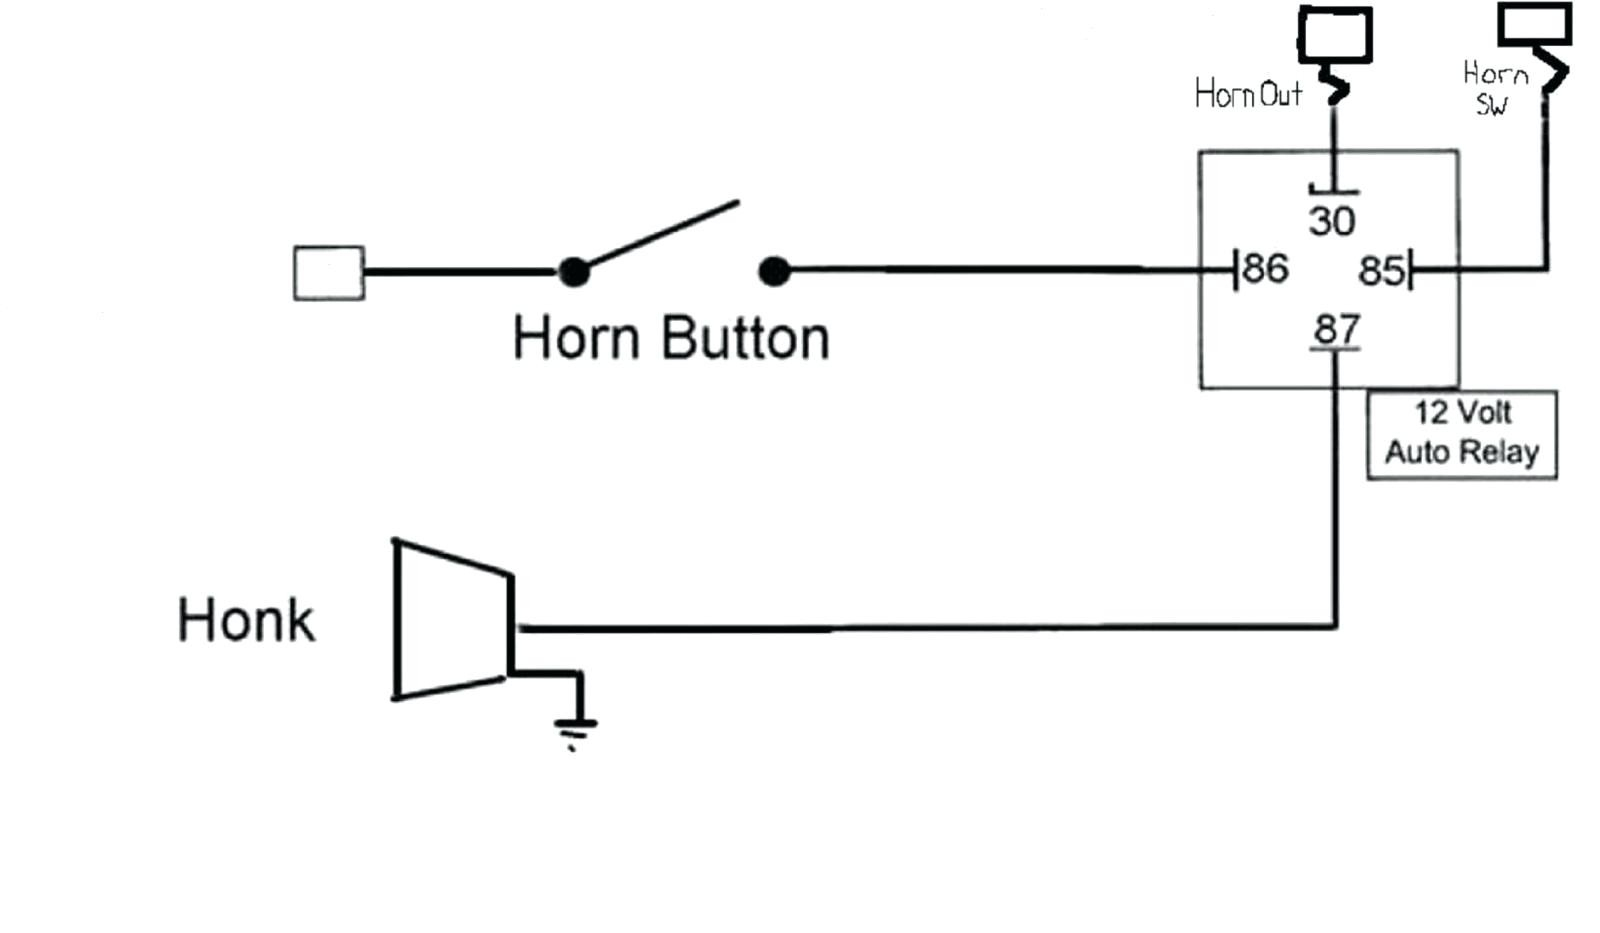 Wiring Car Horn Diagram - Wiring Diagram Data - Horn Relay Wiring Diagram